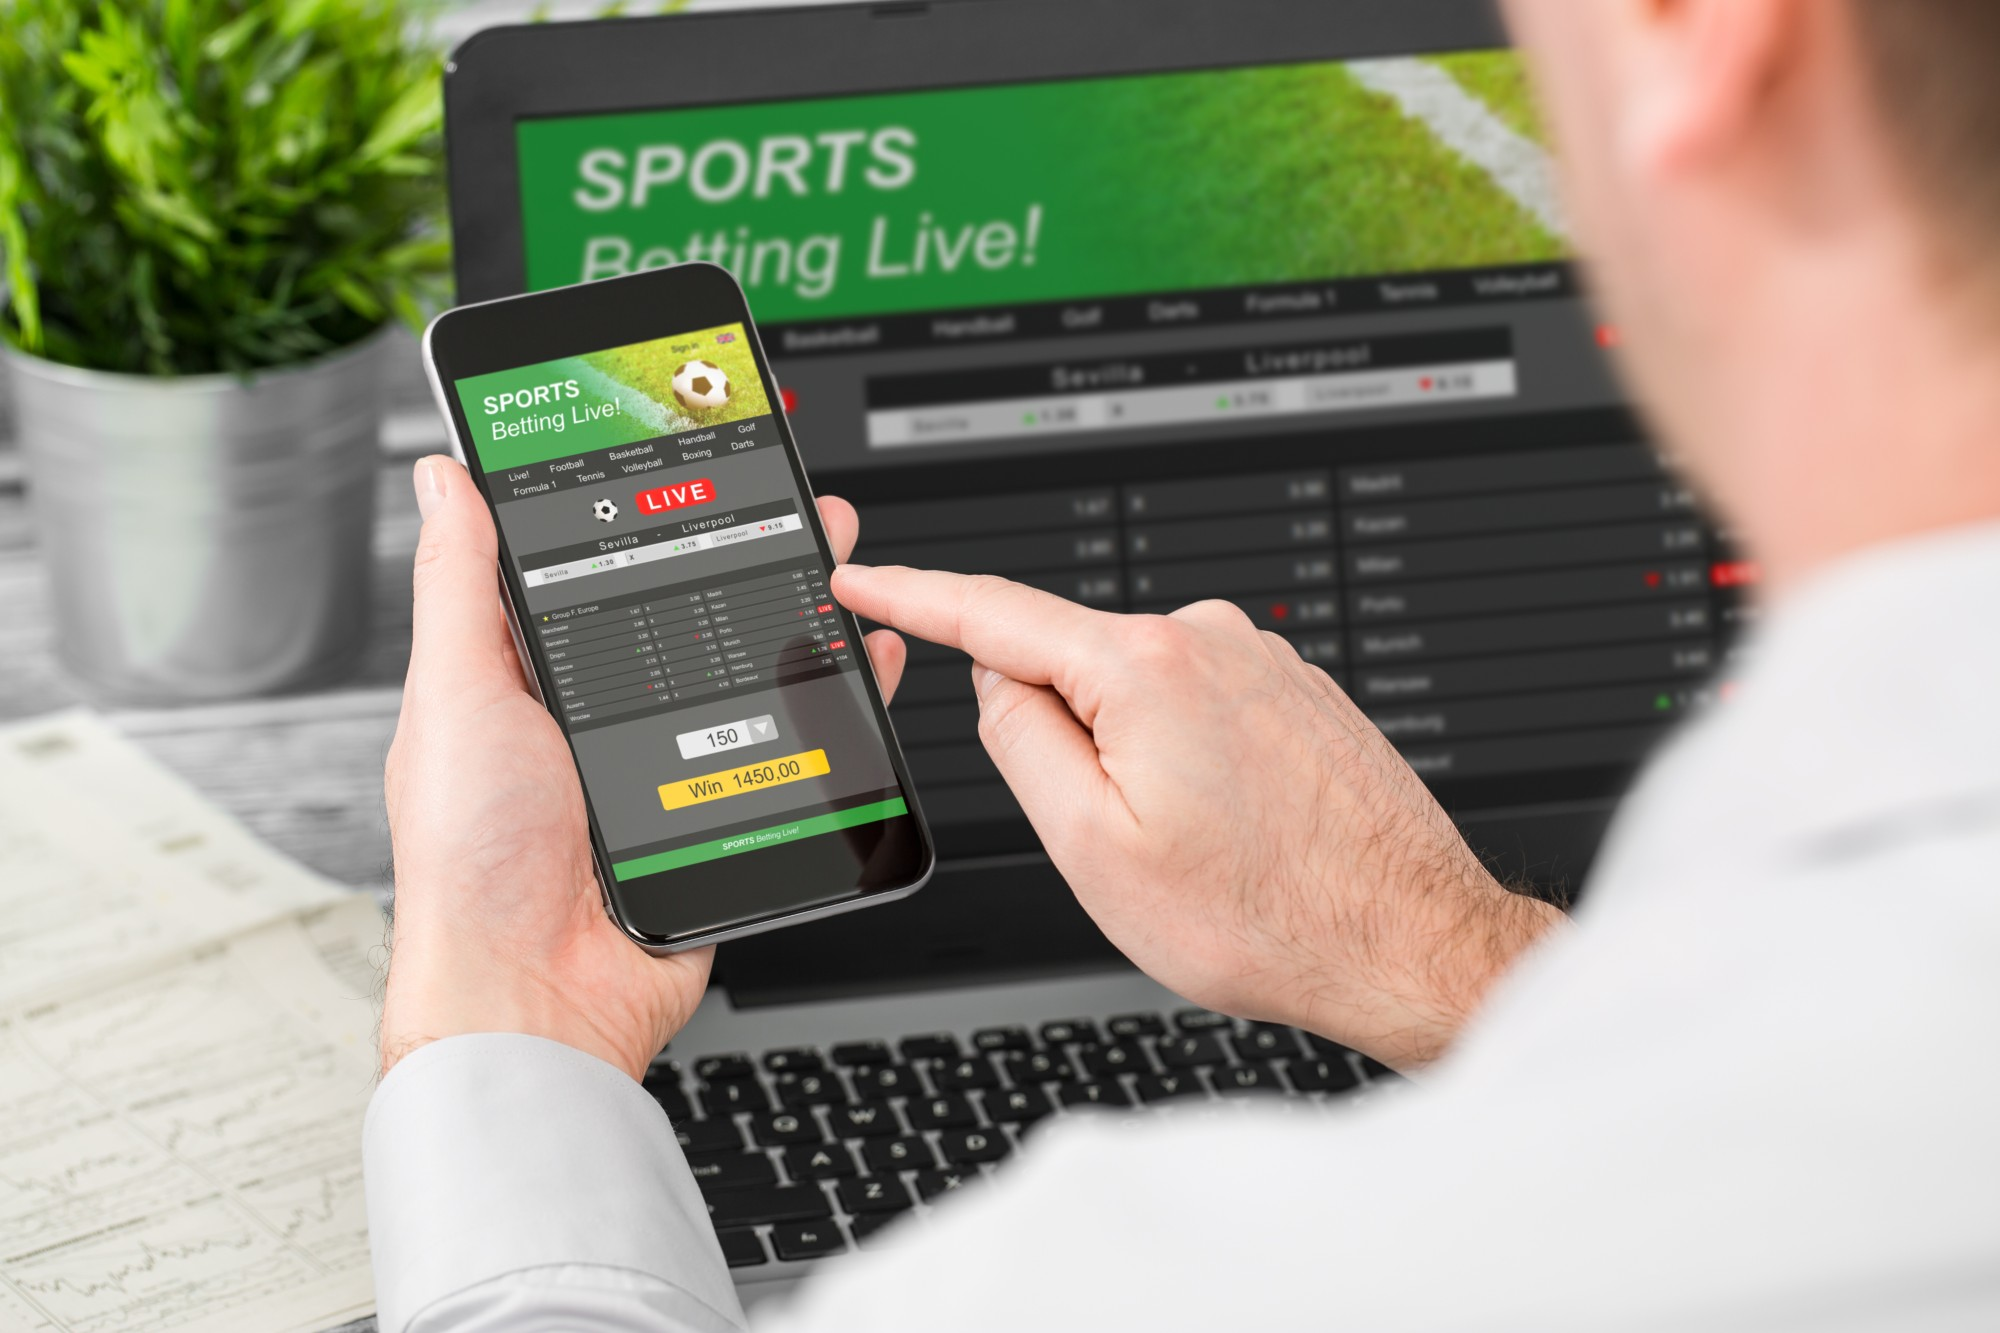 Football betting hotline cabin in the woods betting sceneries